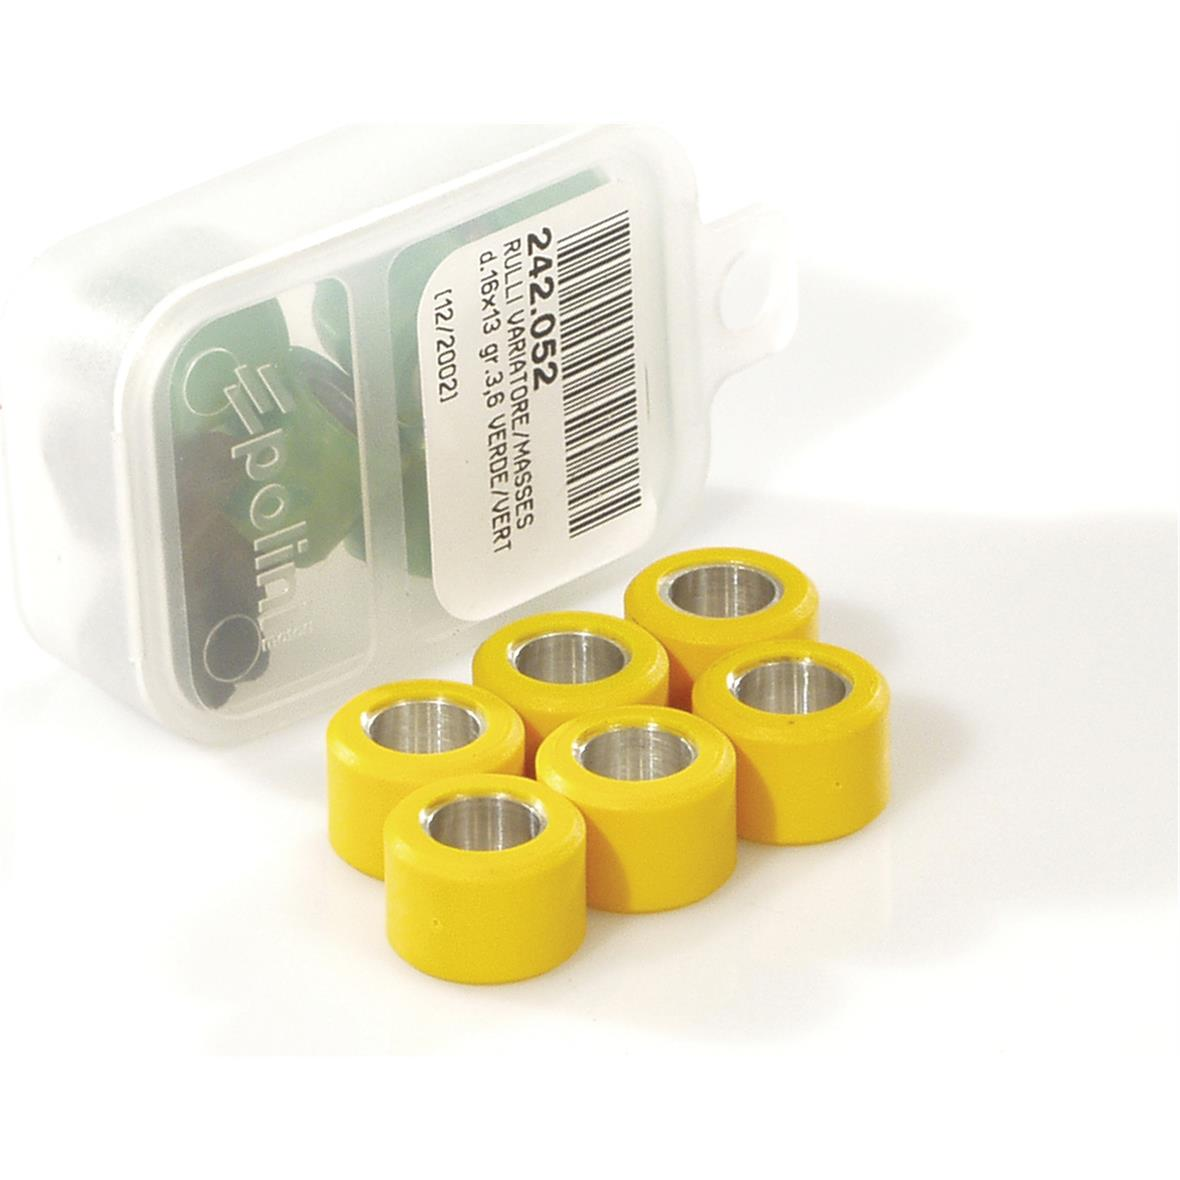 Product Image for 'Variator Rollers POLINI 20x12 mm 10,1gTitle'